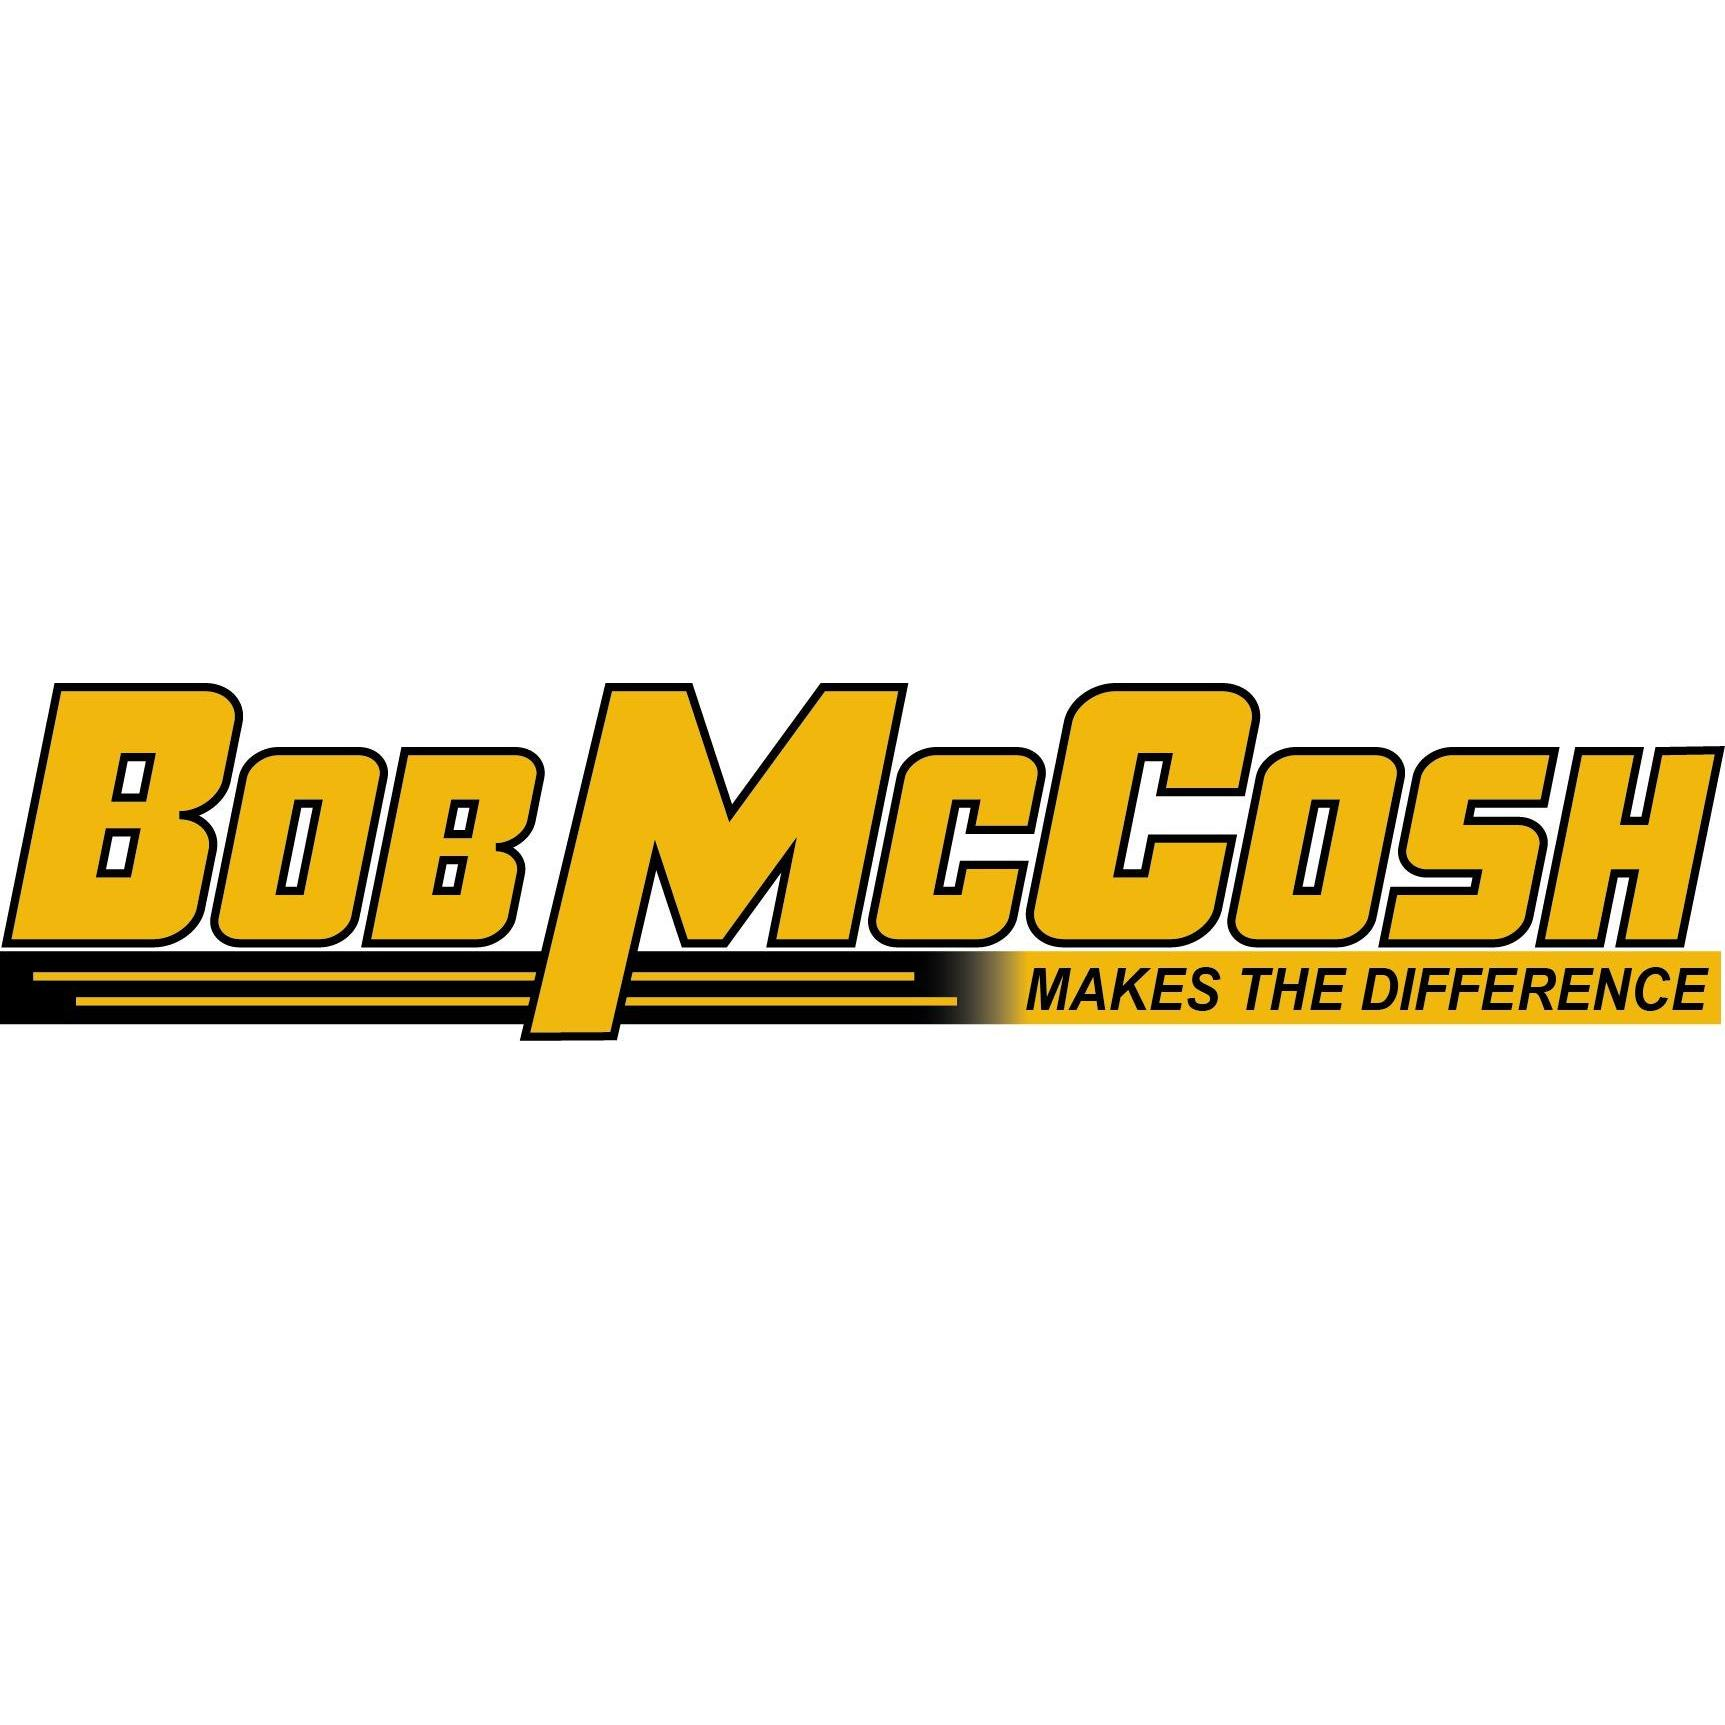 Bob McCosh Chevrolet Buick GMC Cadillac in Columbia, MO | Whitepages